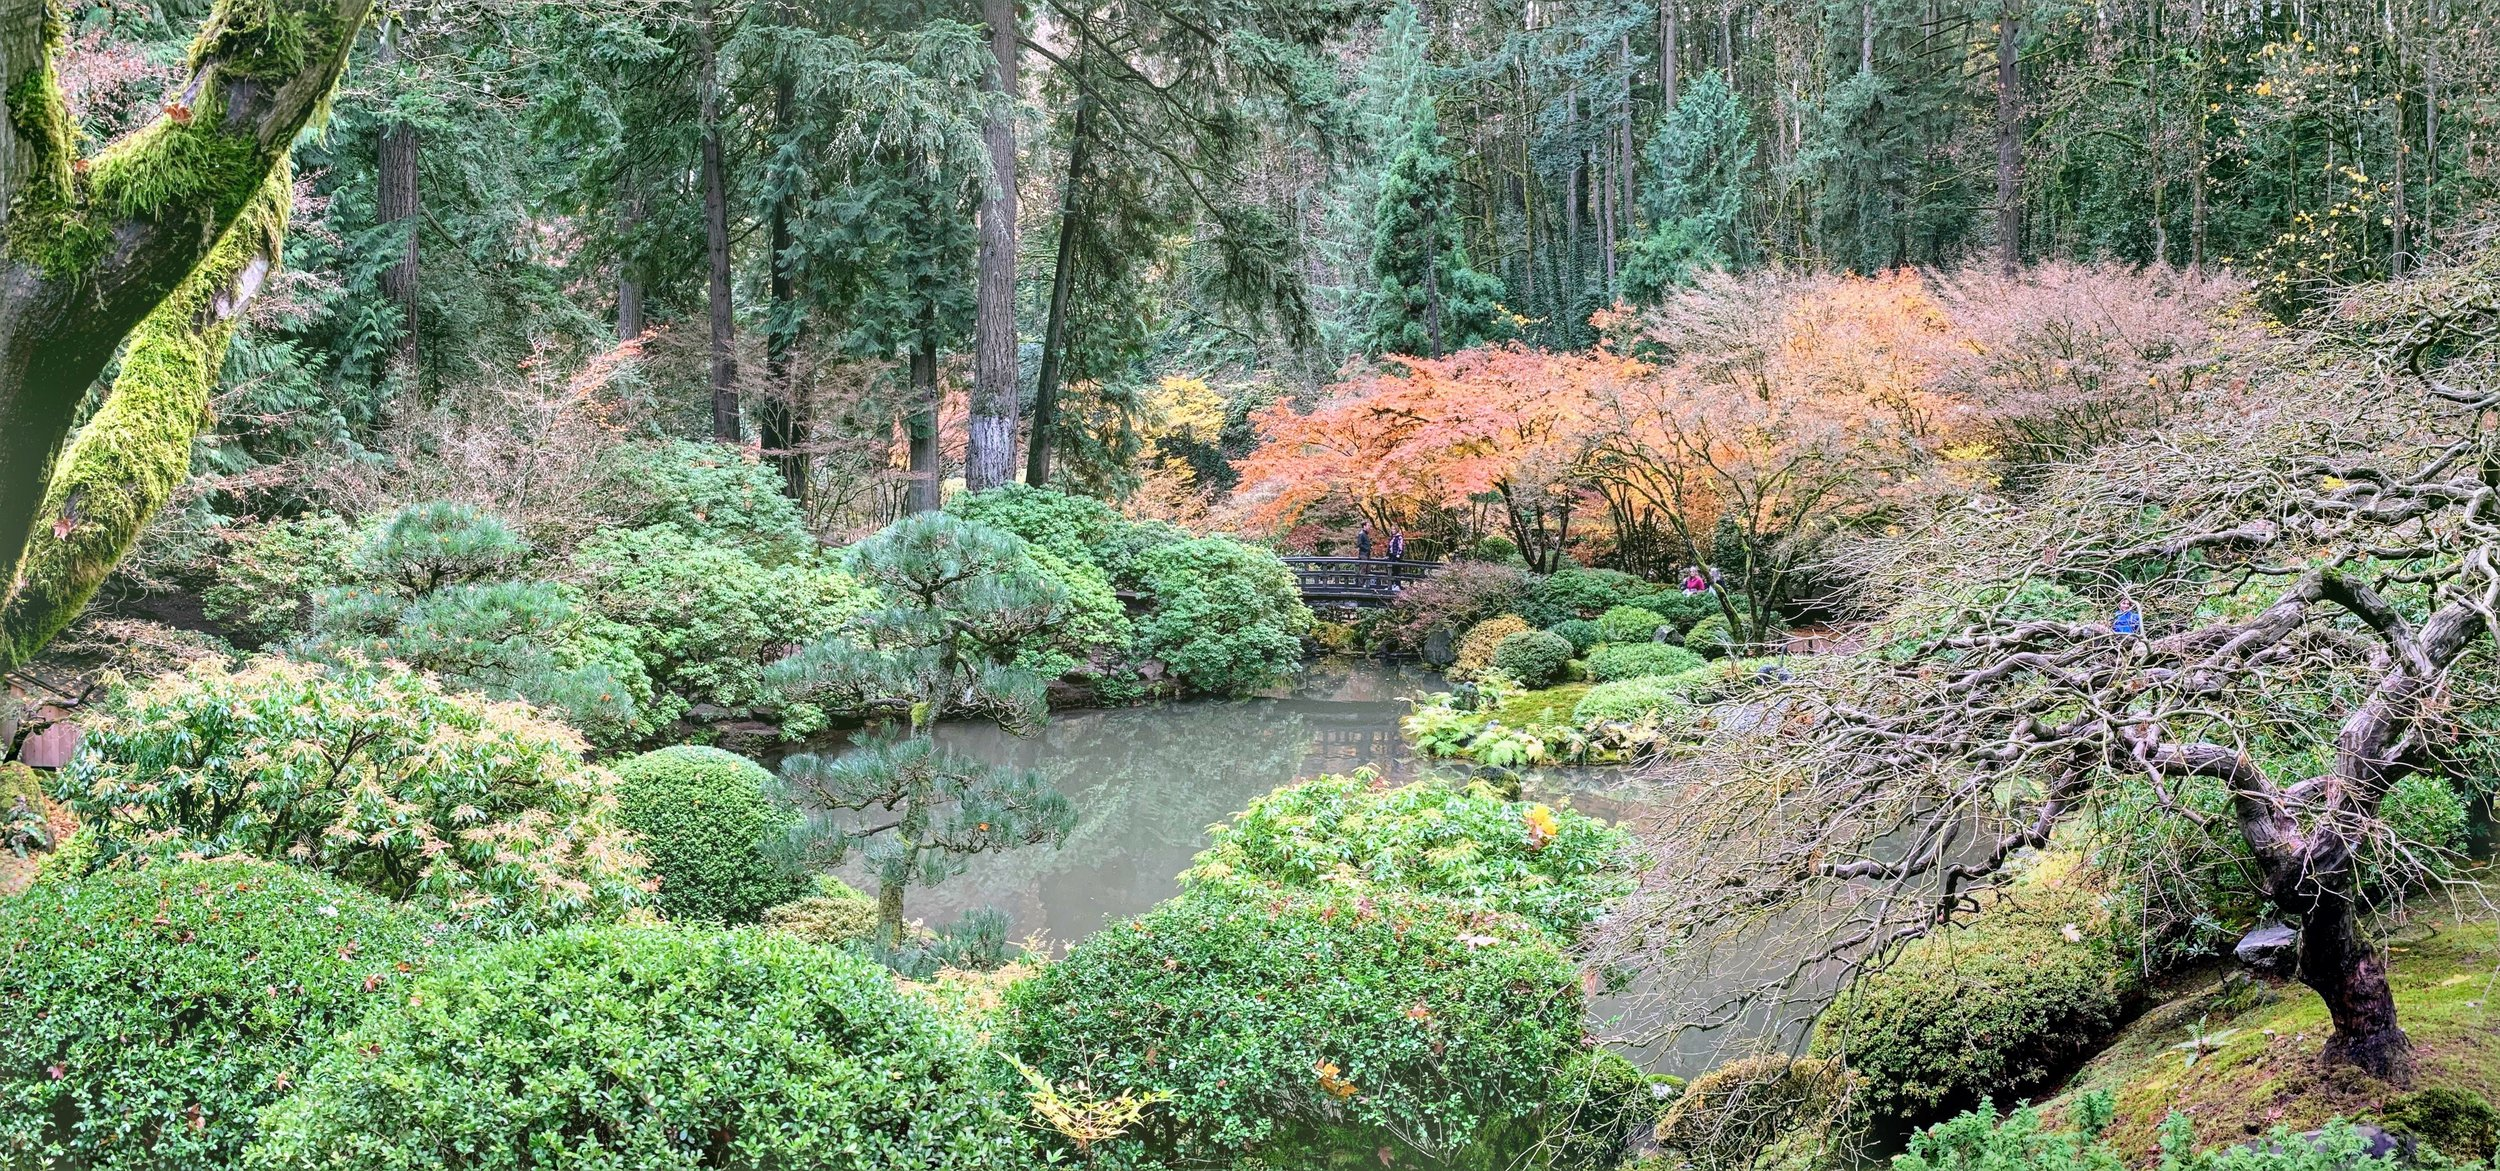 Another panoramic view of the garden.